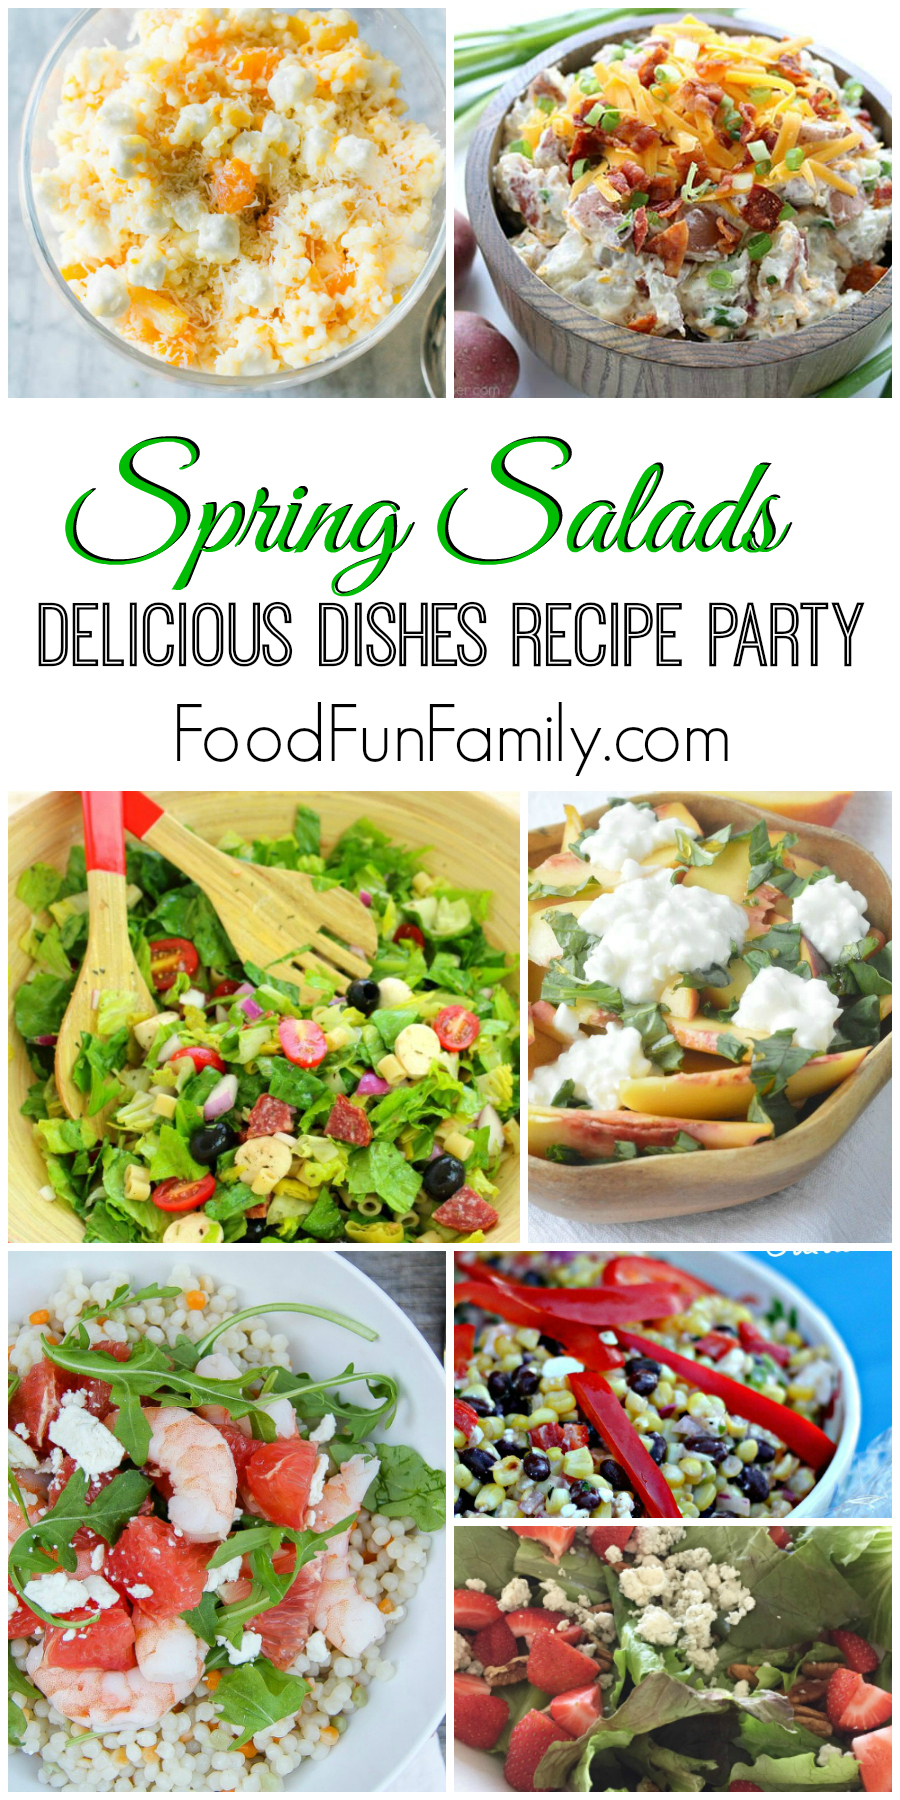 Delicious Spring Salads - a Delicious Dishes Recipe Party collection from Food Fun Family